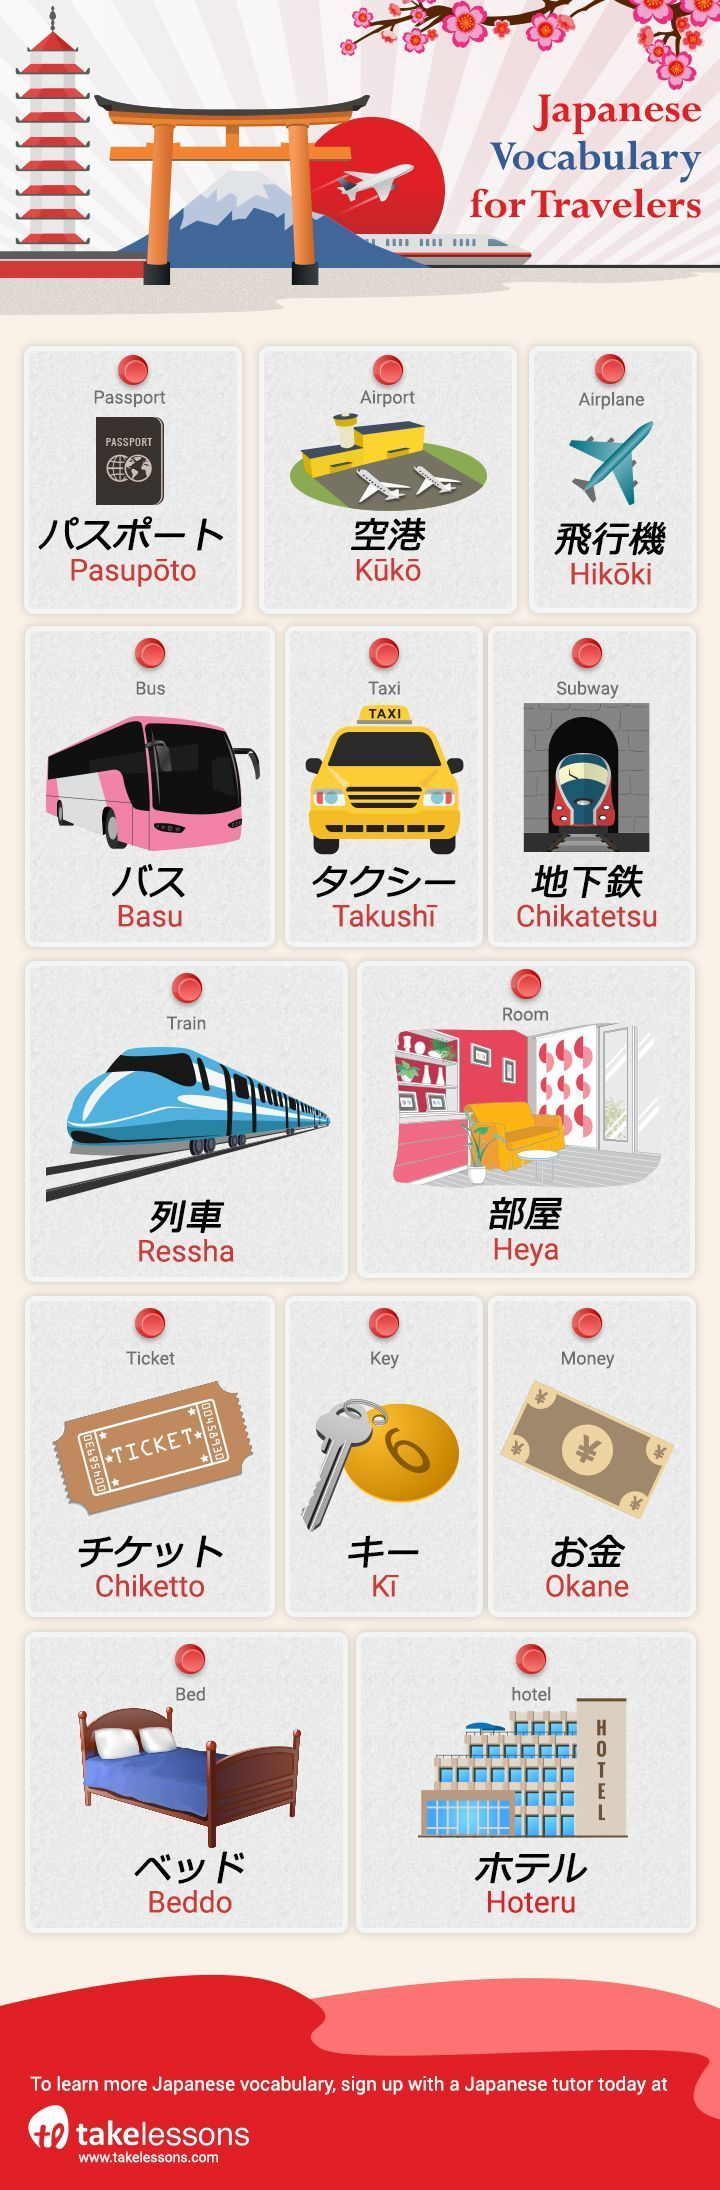 15 Japanese Vocabulary Words for Travelers – #Japa…